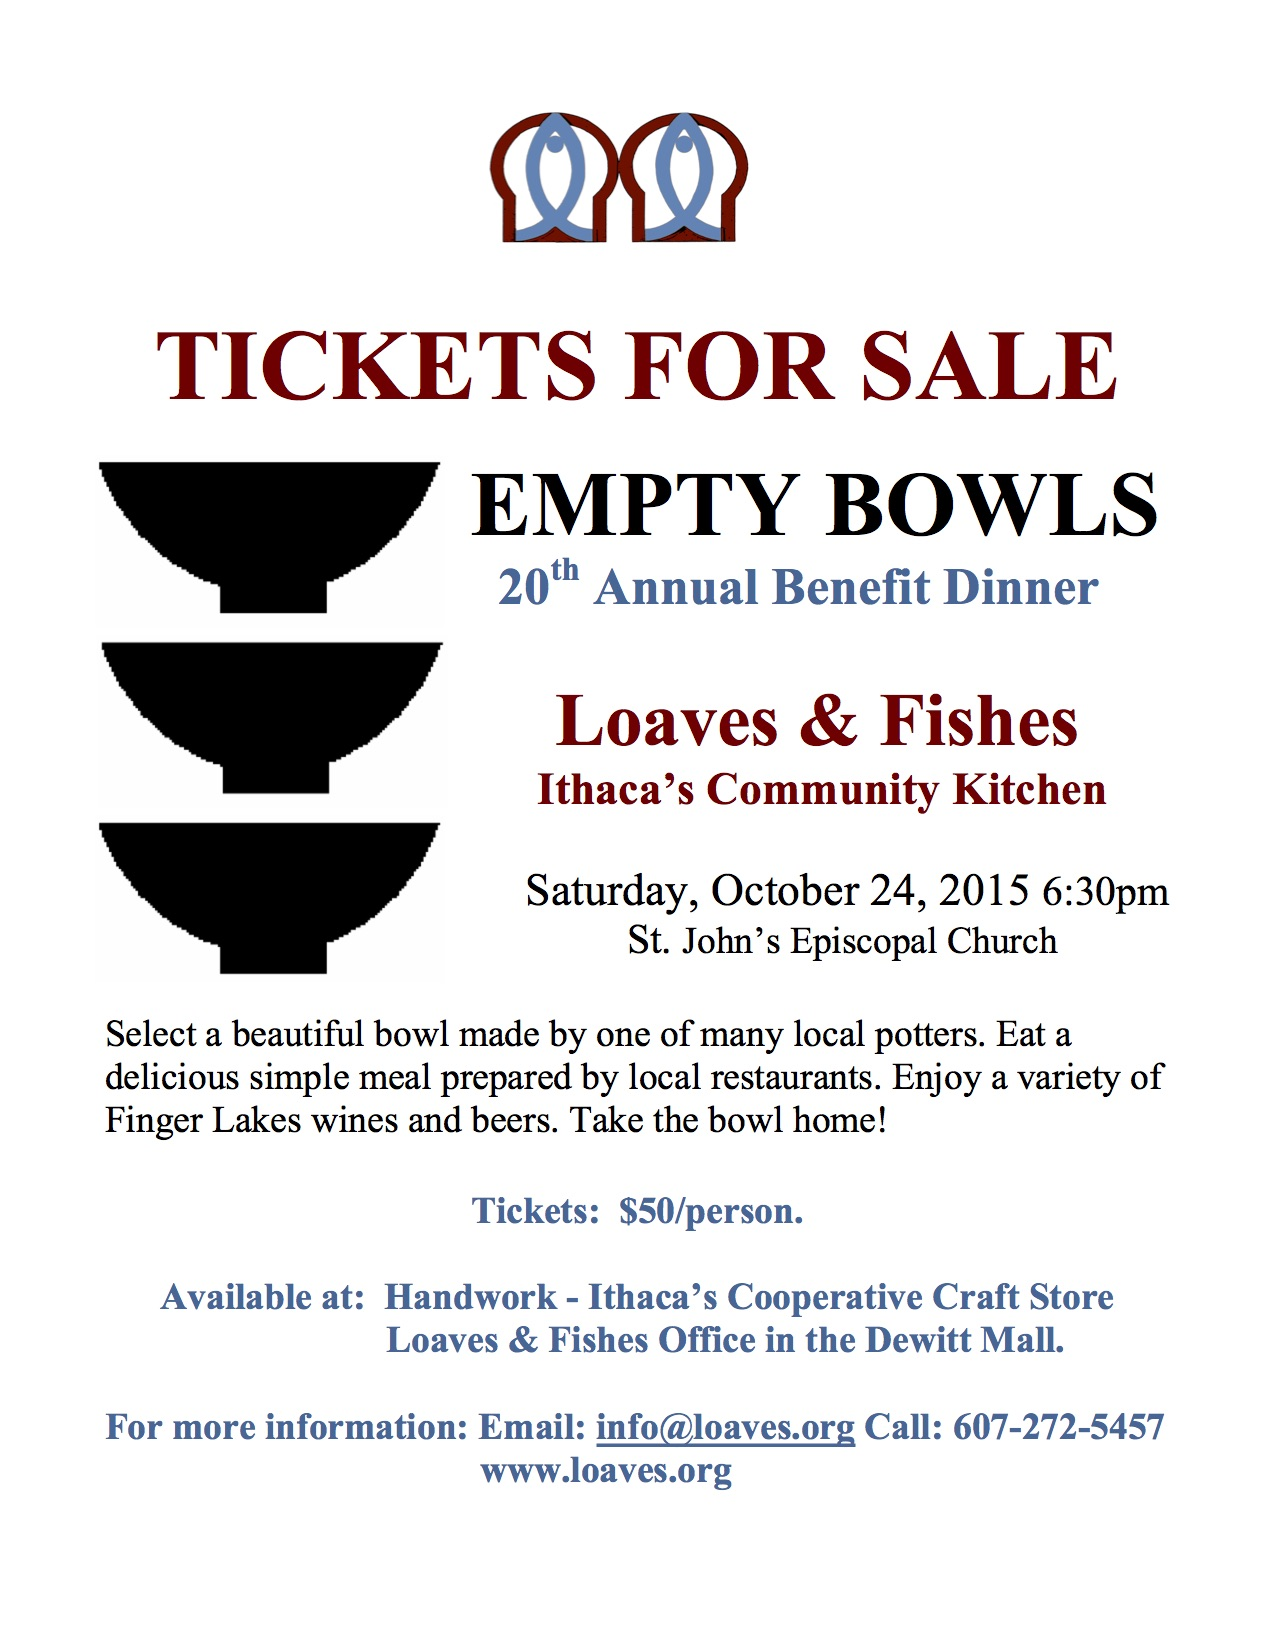 loaves fishes 20th annual empty bowls benefit dinner st mtbowls